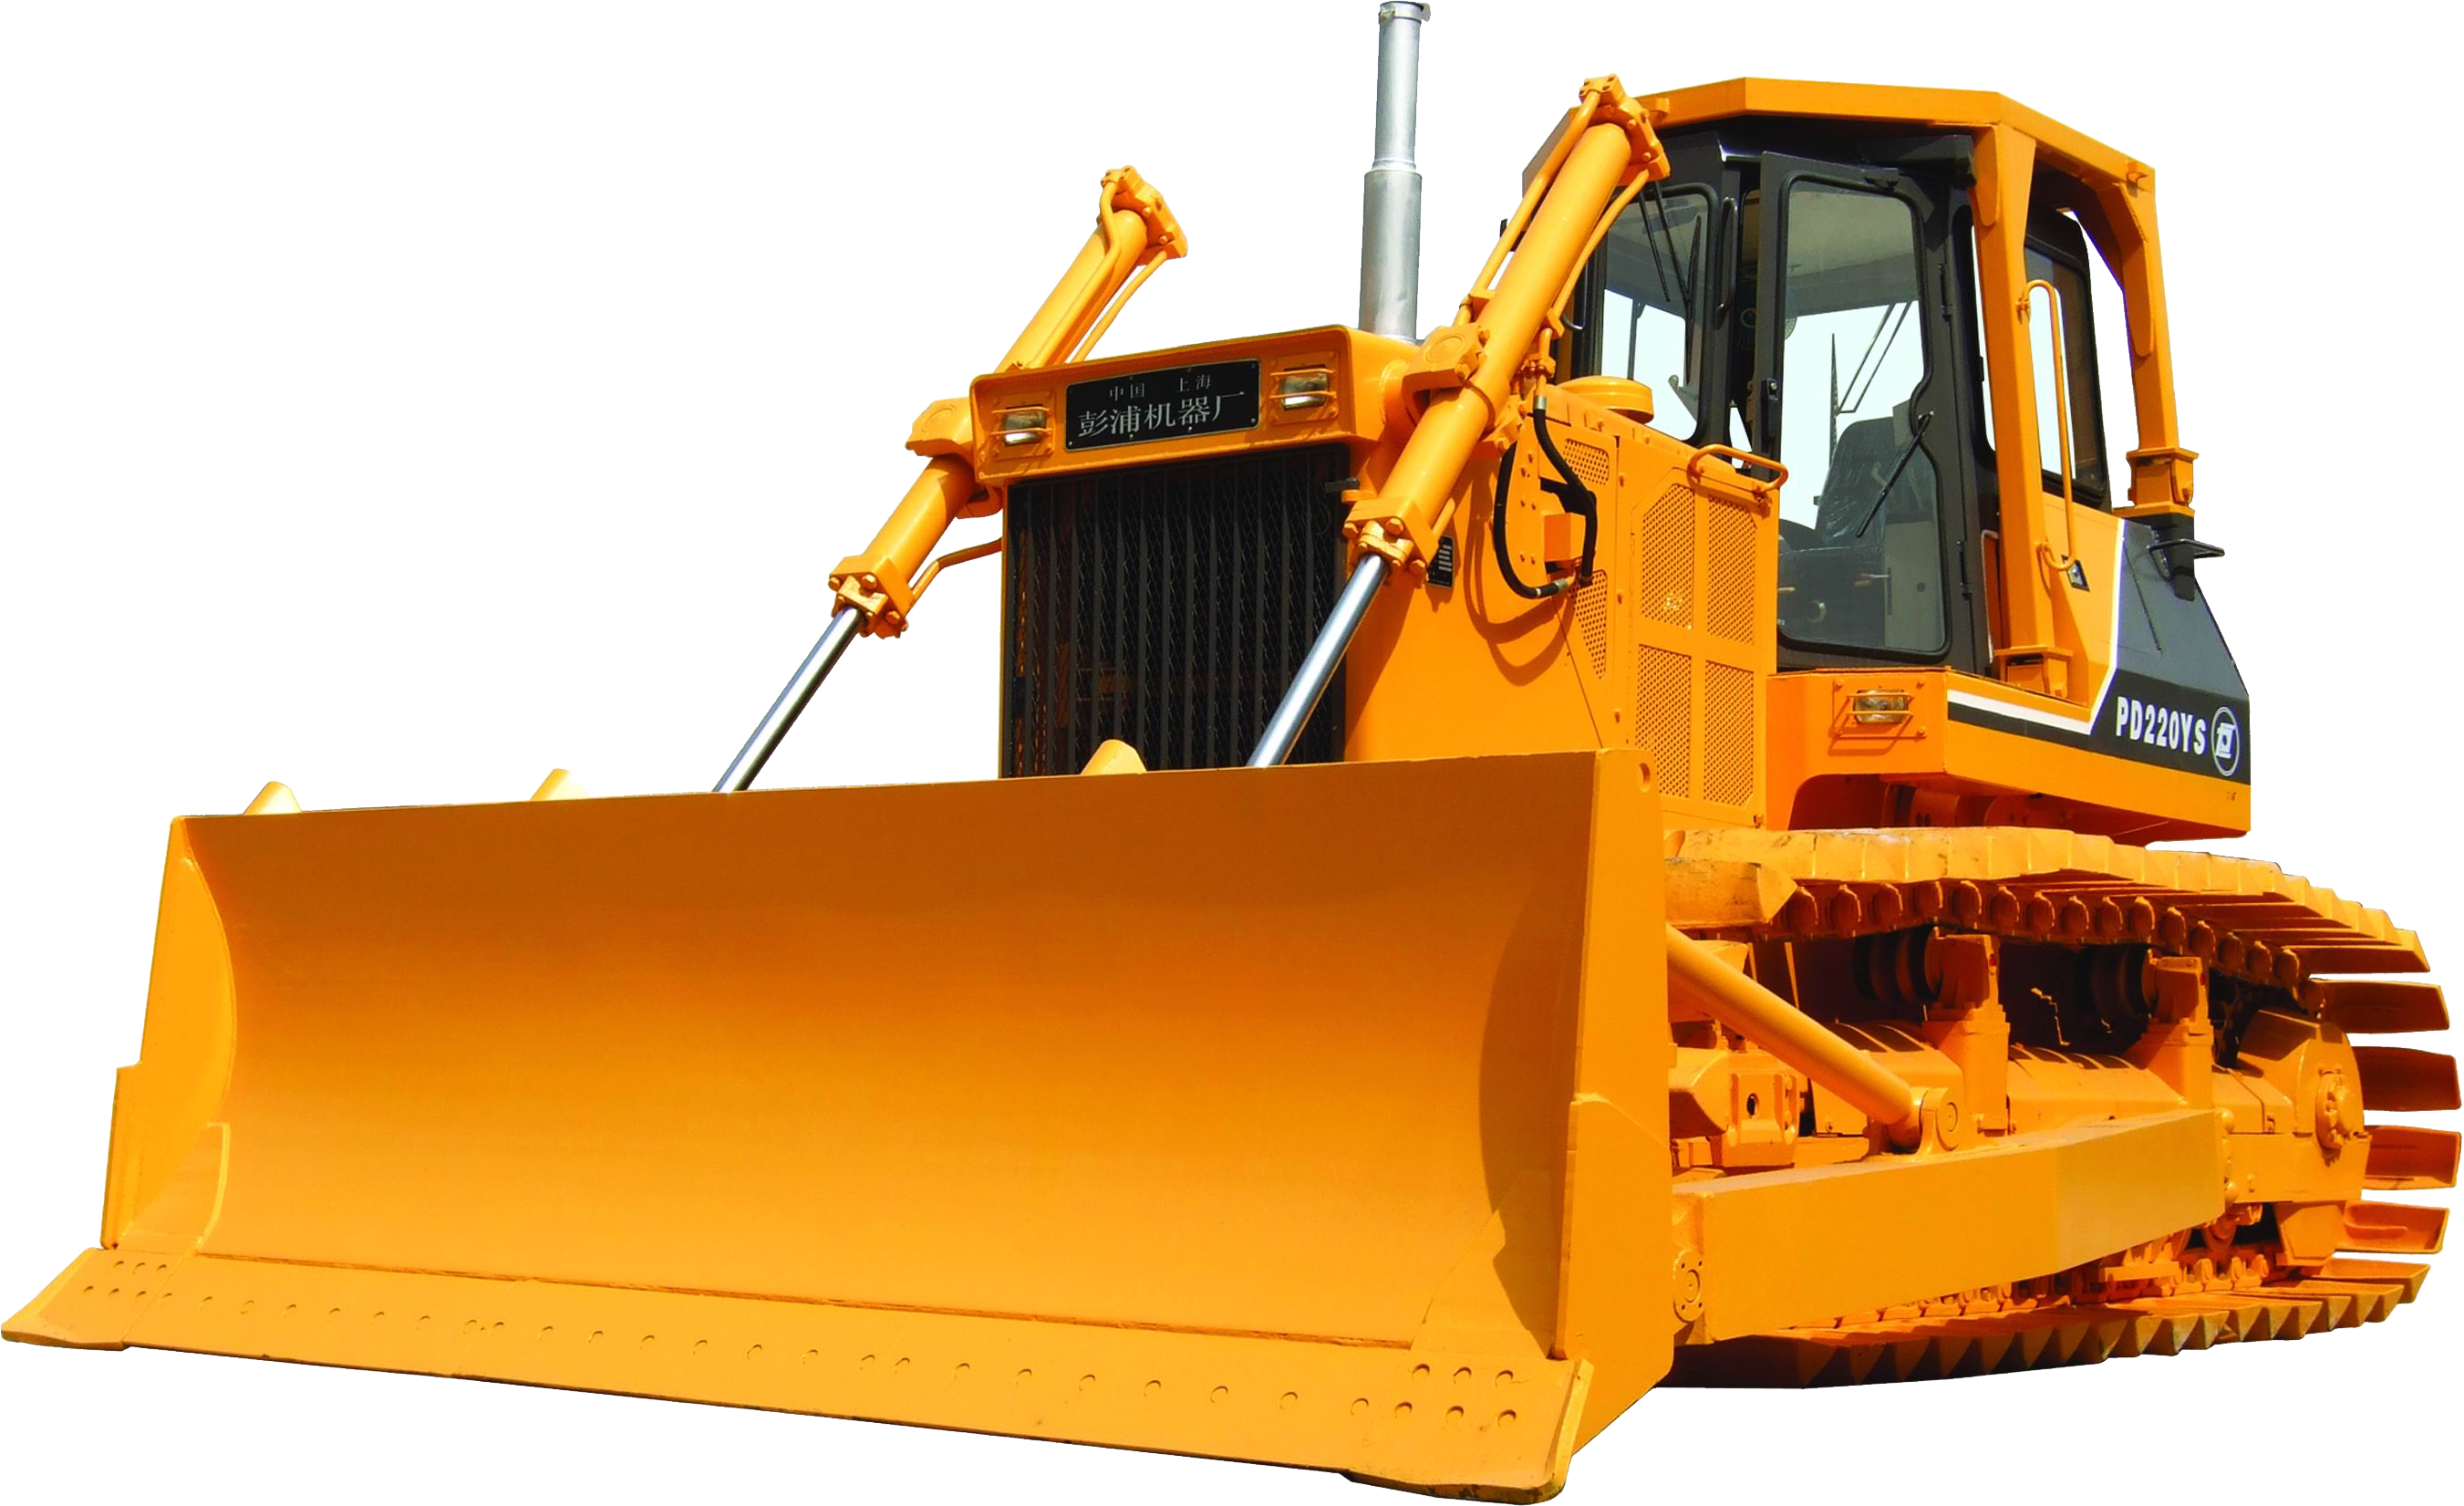 Cat bulldozer clipart picture transparent library Introducing Picture Of A Bulldozer PNG Images #16736 - Unknown ... picture transparent library